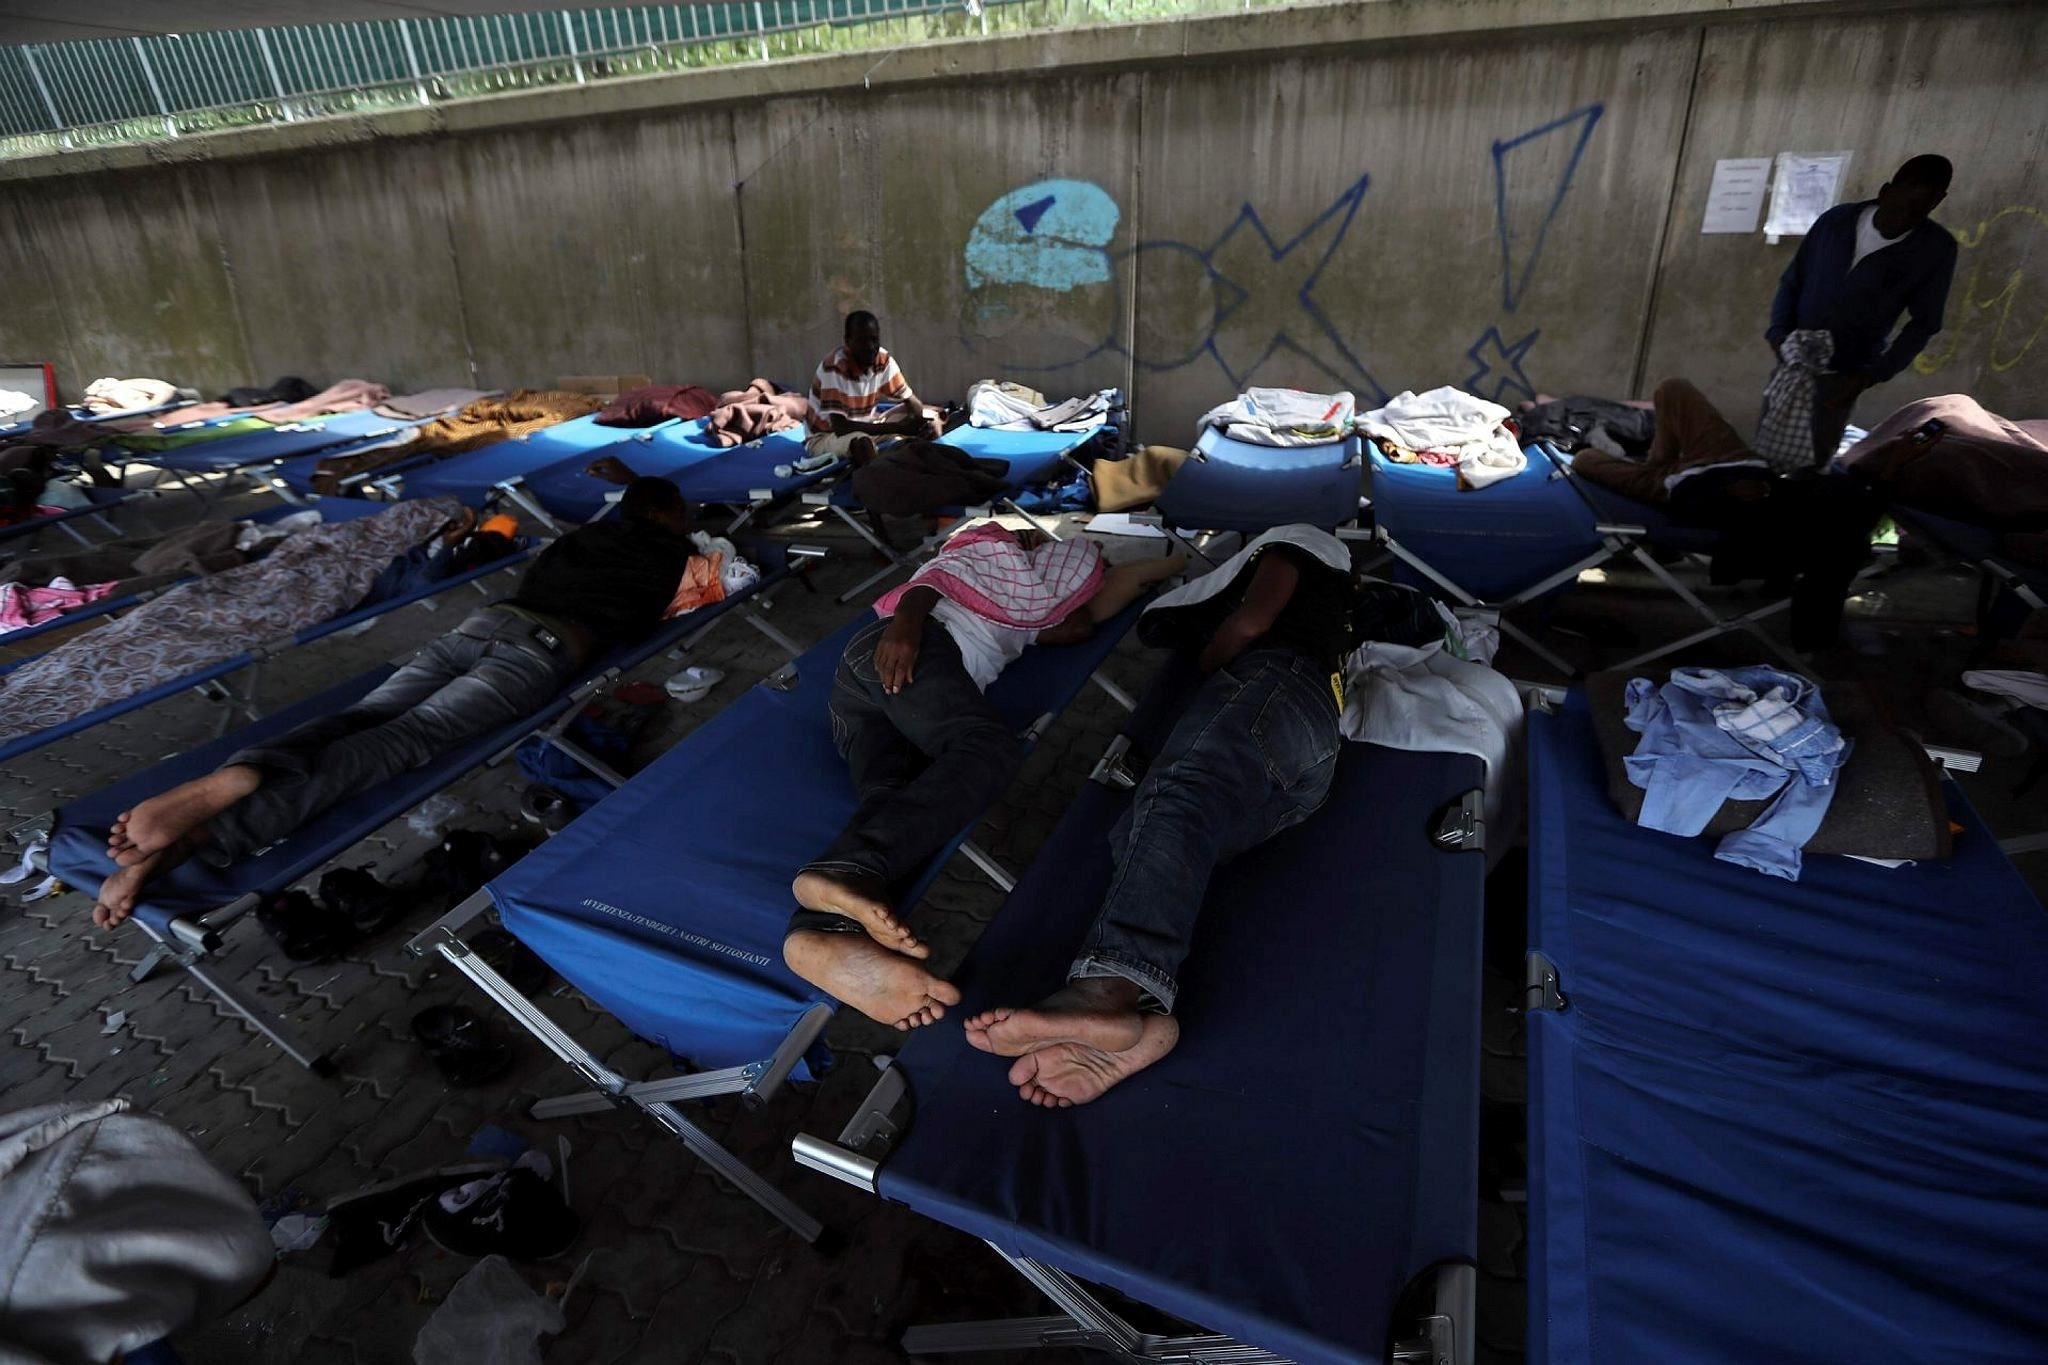 Migrants sleep on camp beds at a Red Cross center in the city of Ventimiglia on the French-Italian border on Sept. 14.